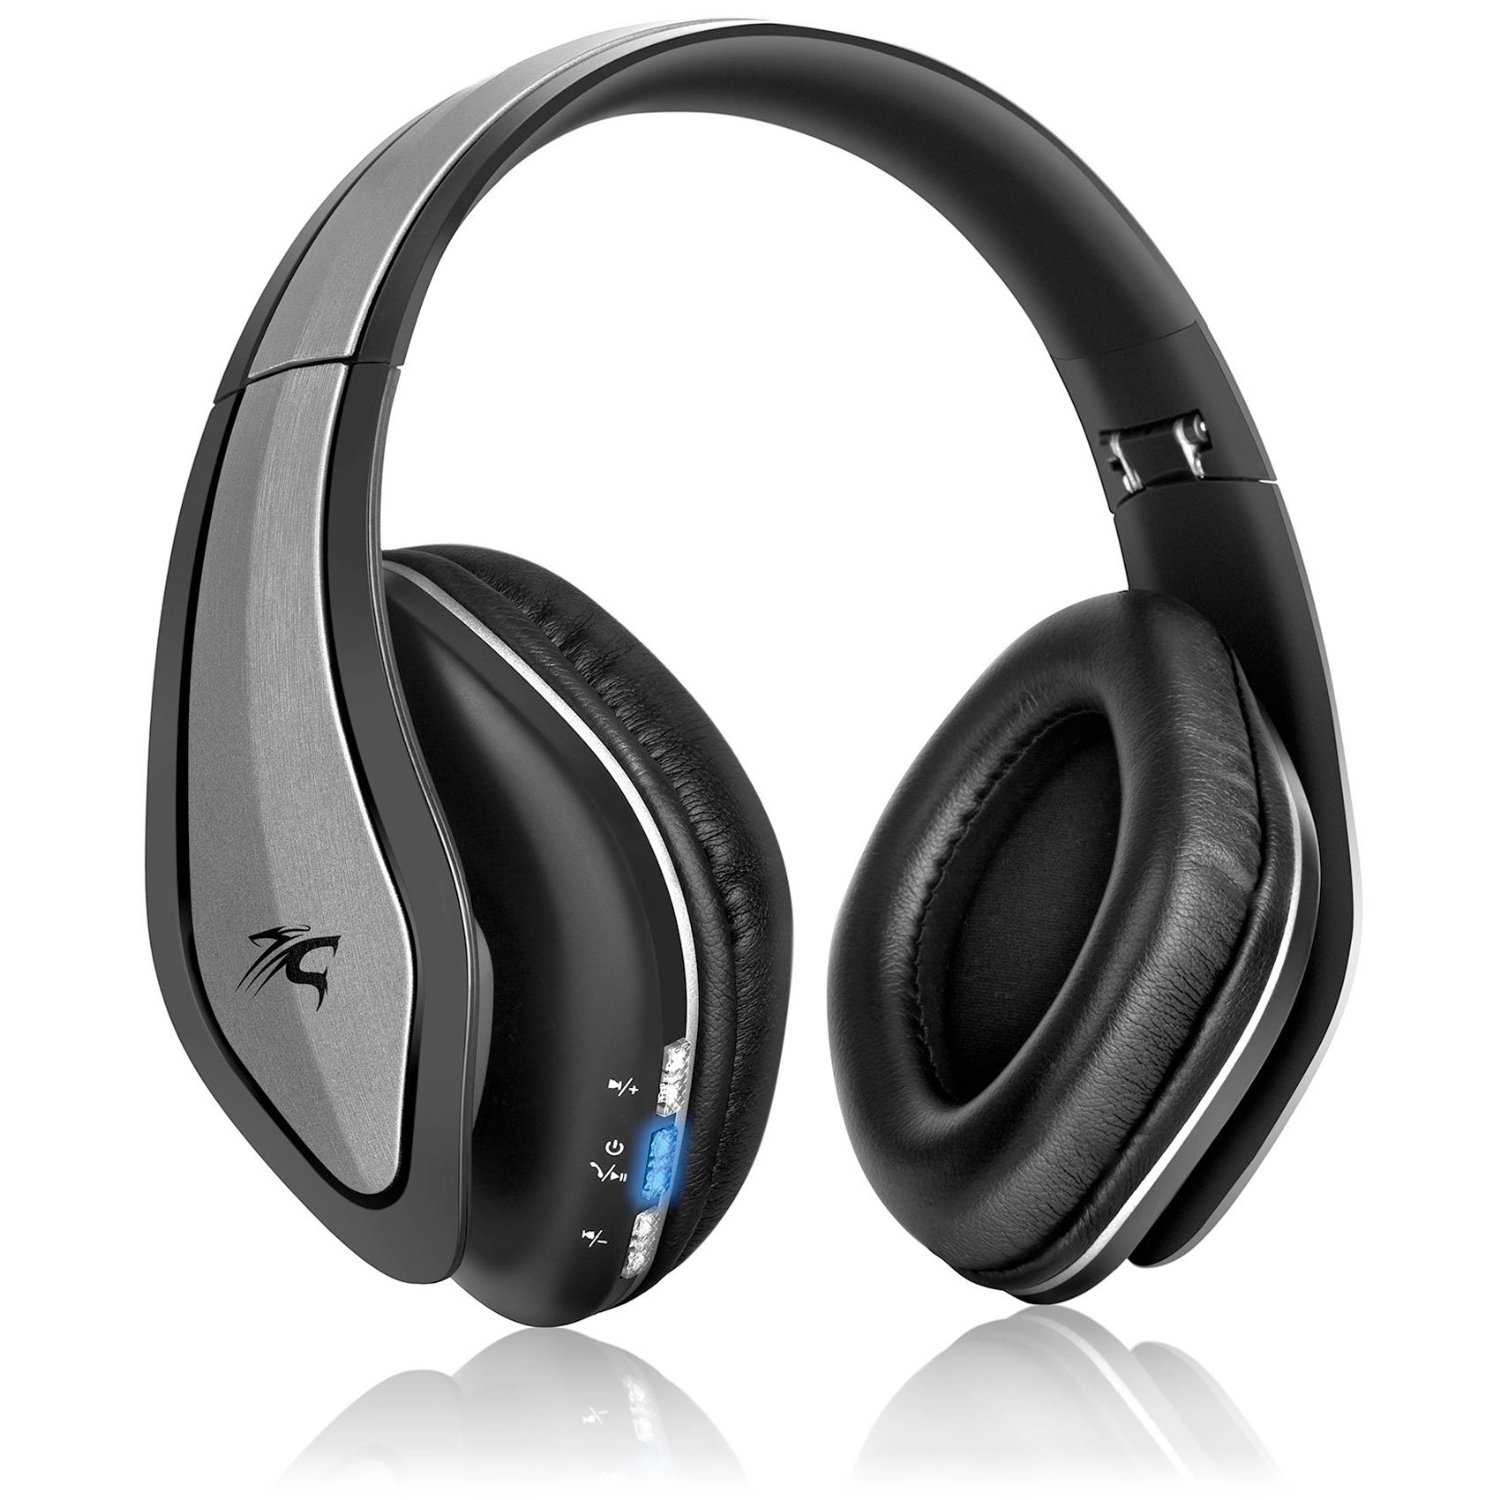 sentey bluetooth headphones review. Black Bedroom Furniture Sets. Home Design Ideas